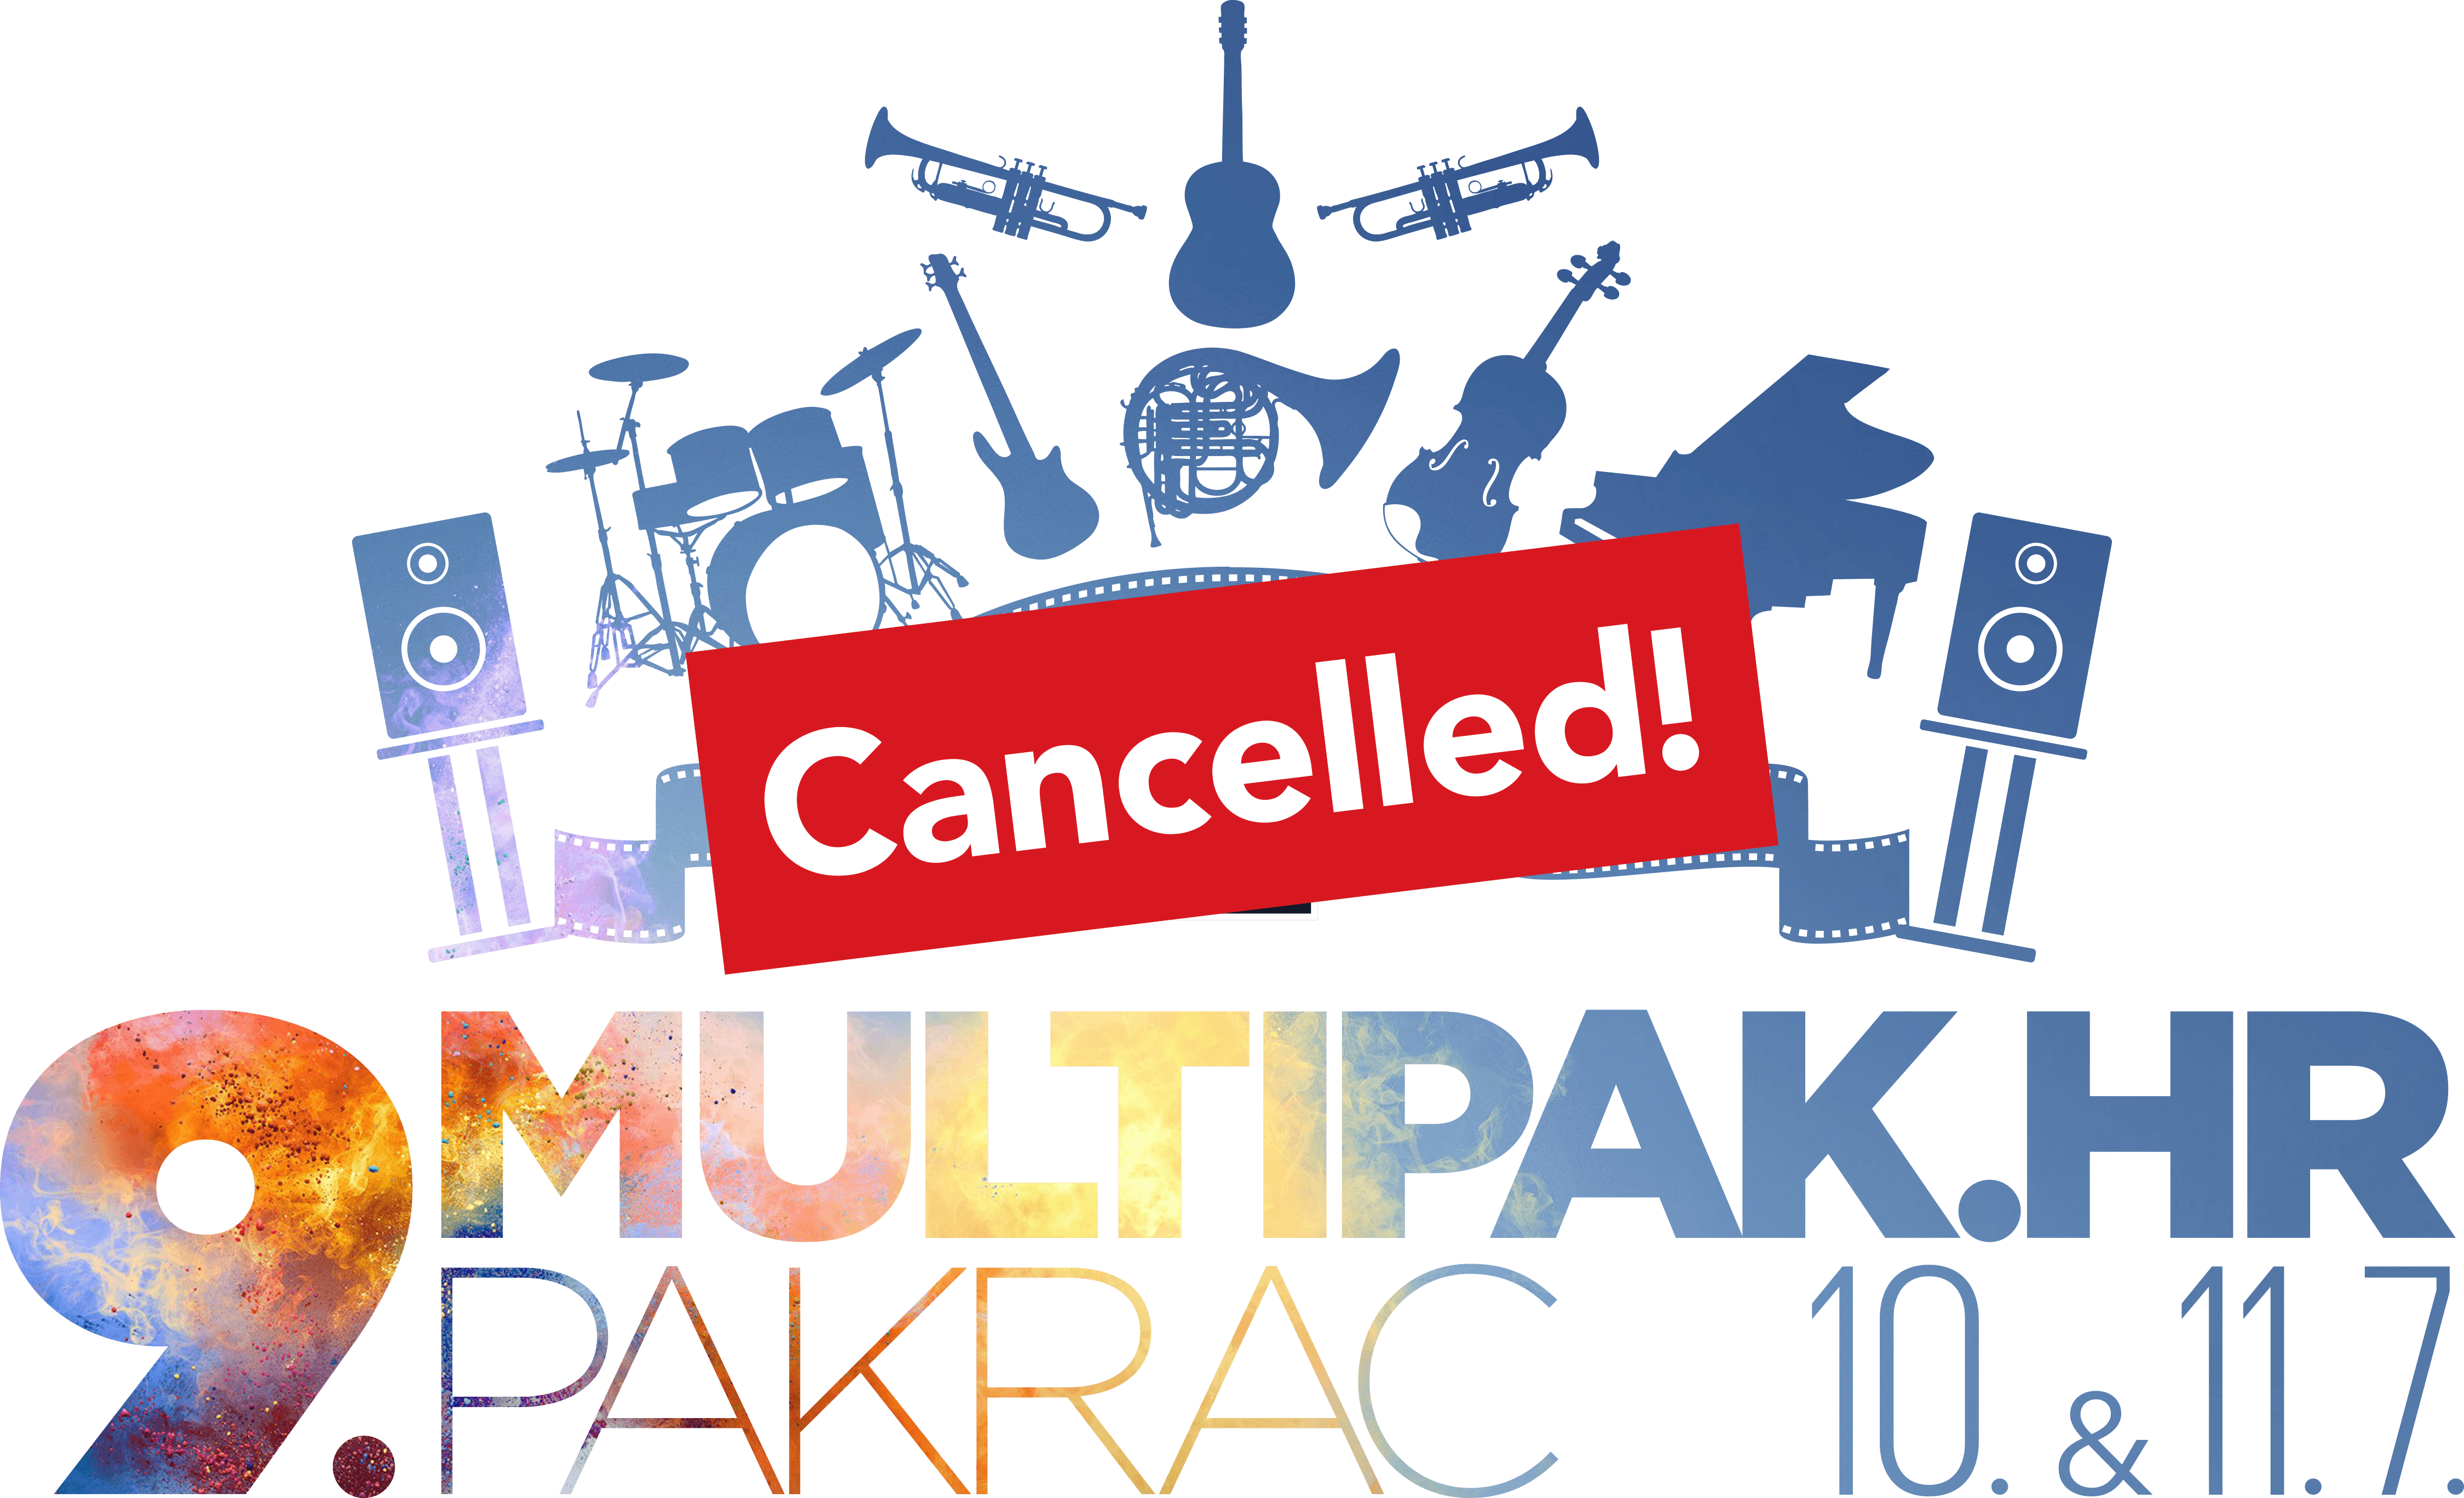 Multipak cancelled